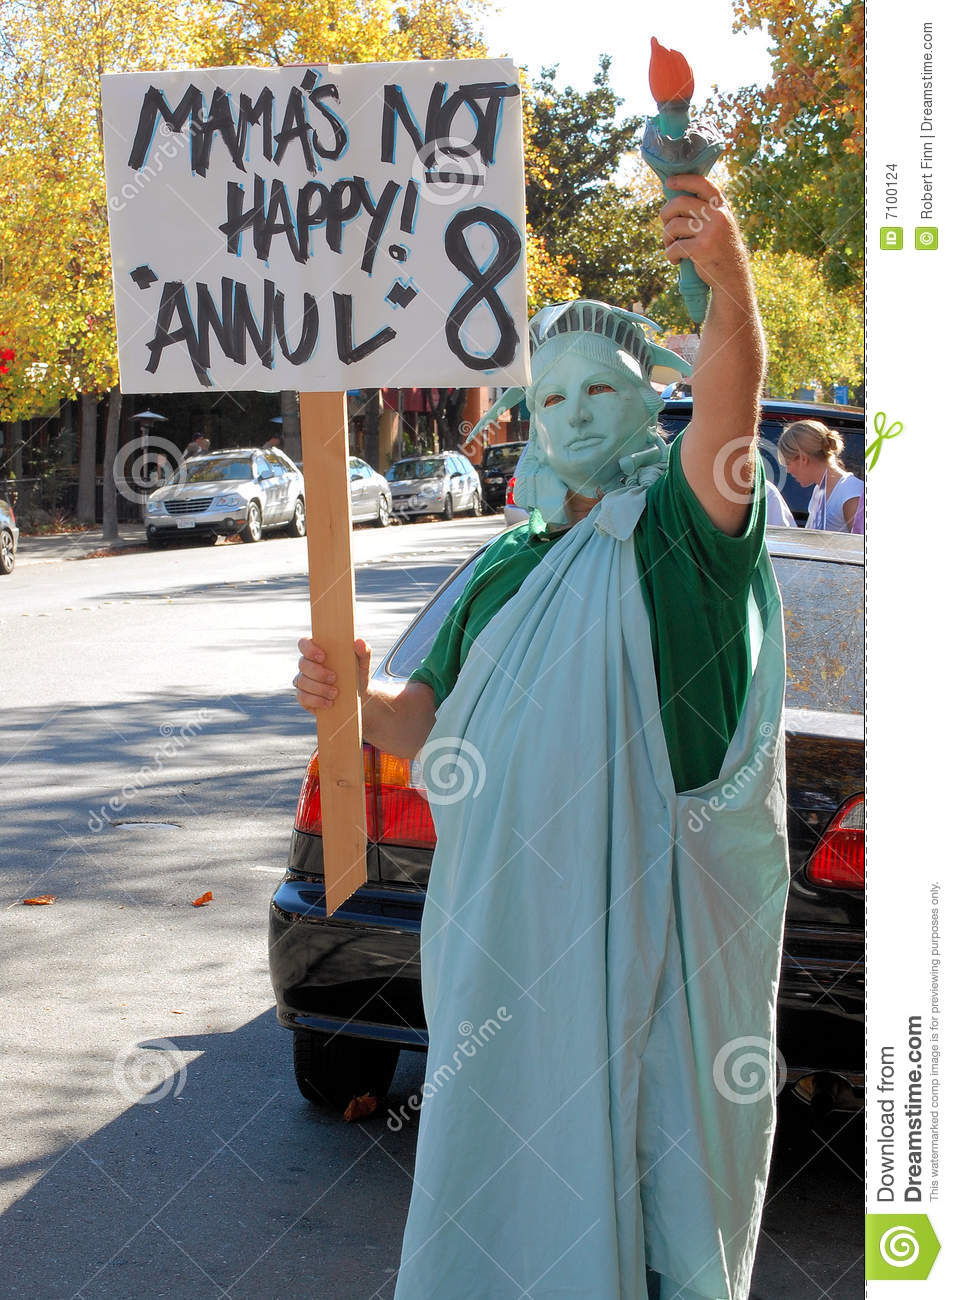 Statue of Liberty at Same-sex marriage protest